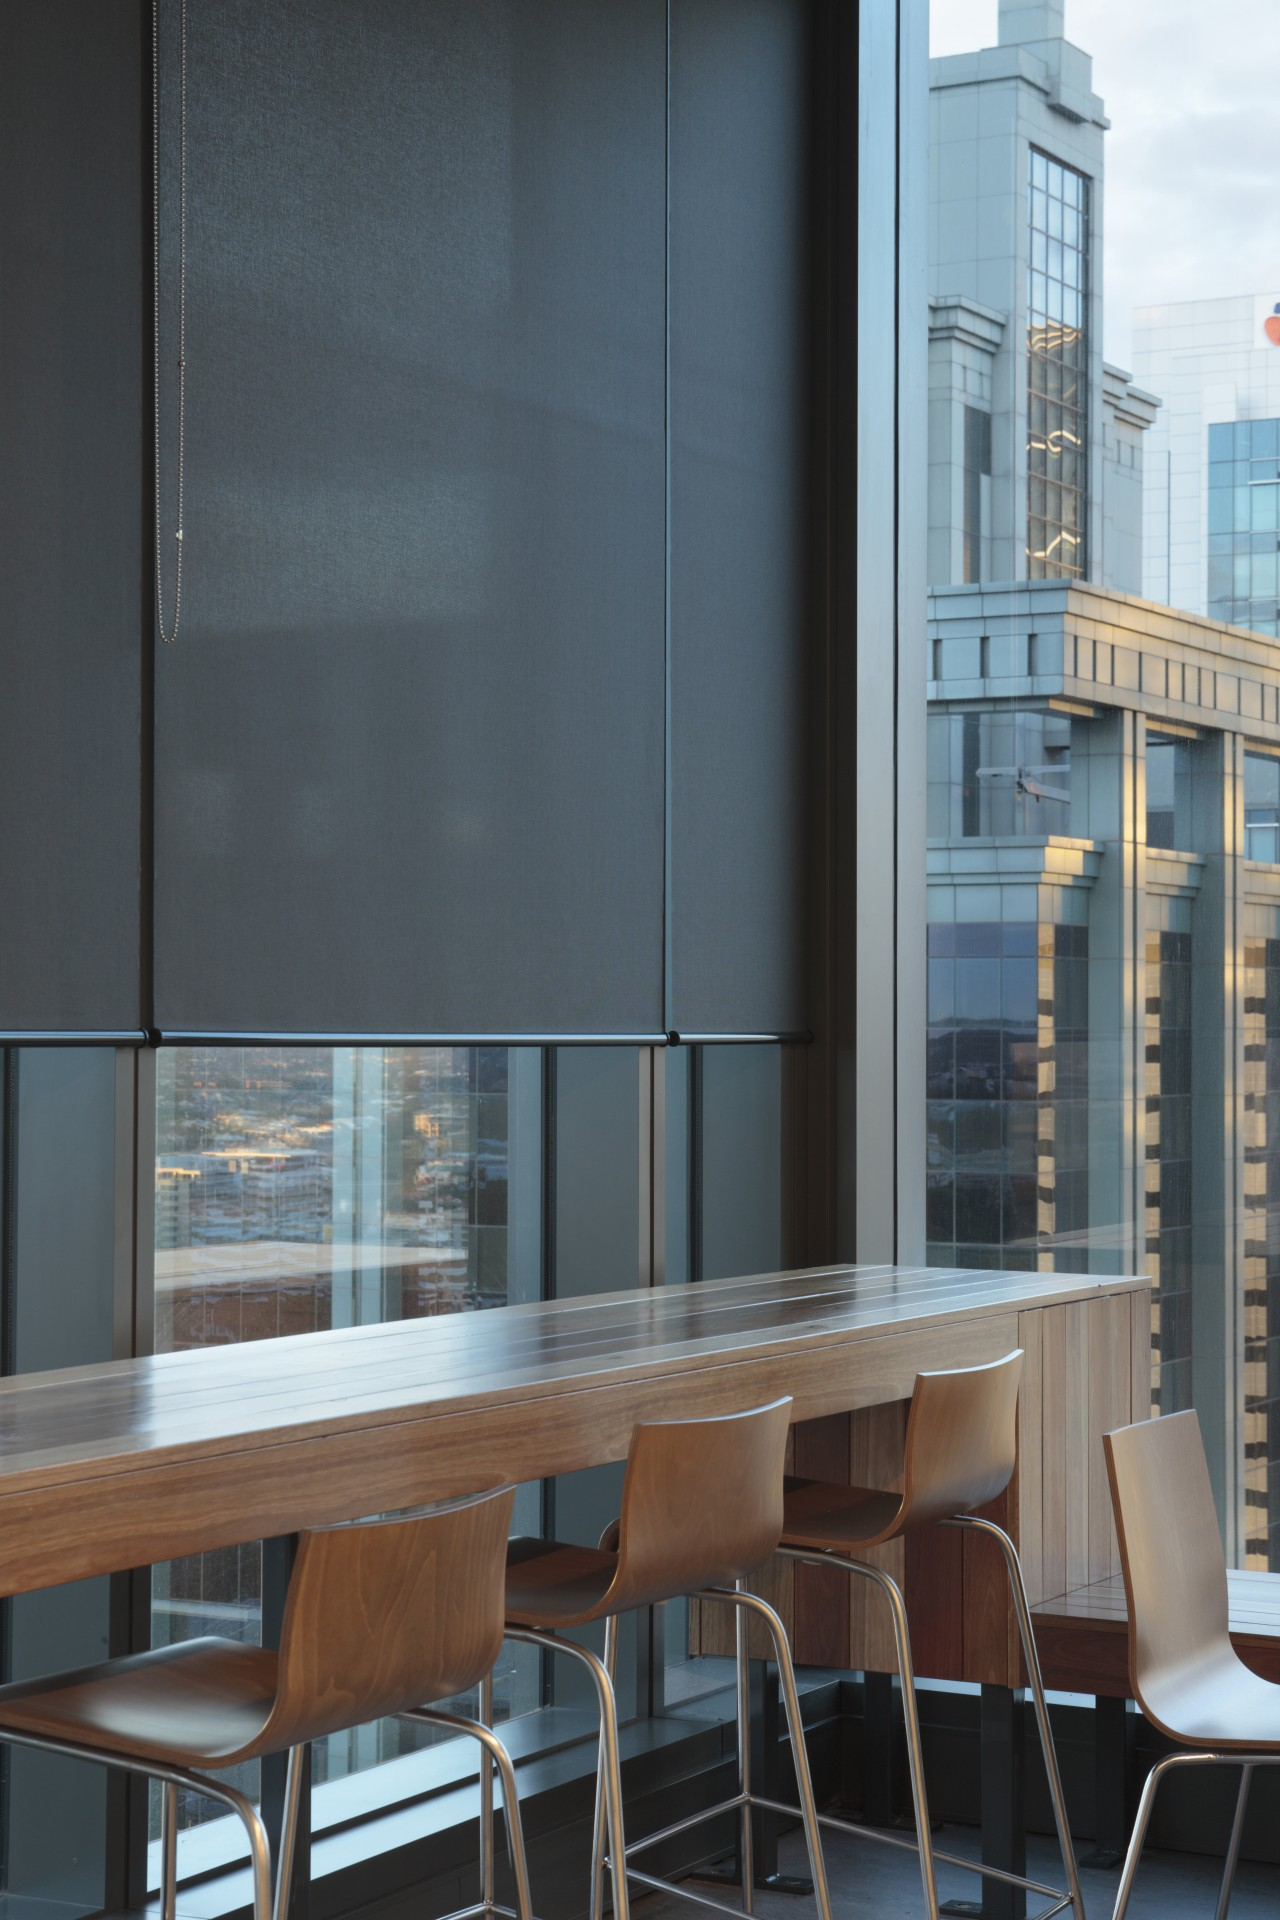 Interior view of 34-Story building with blinds from apartment, architecture, building, furniture, glass, interior design, table, window, teal, black